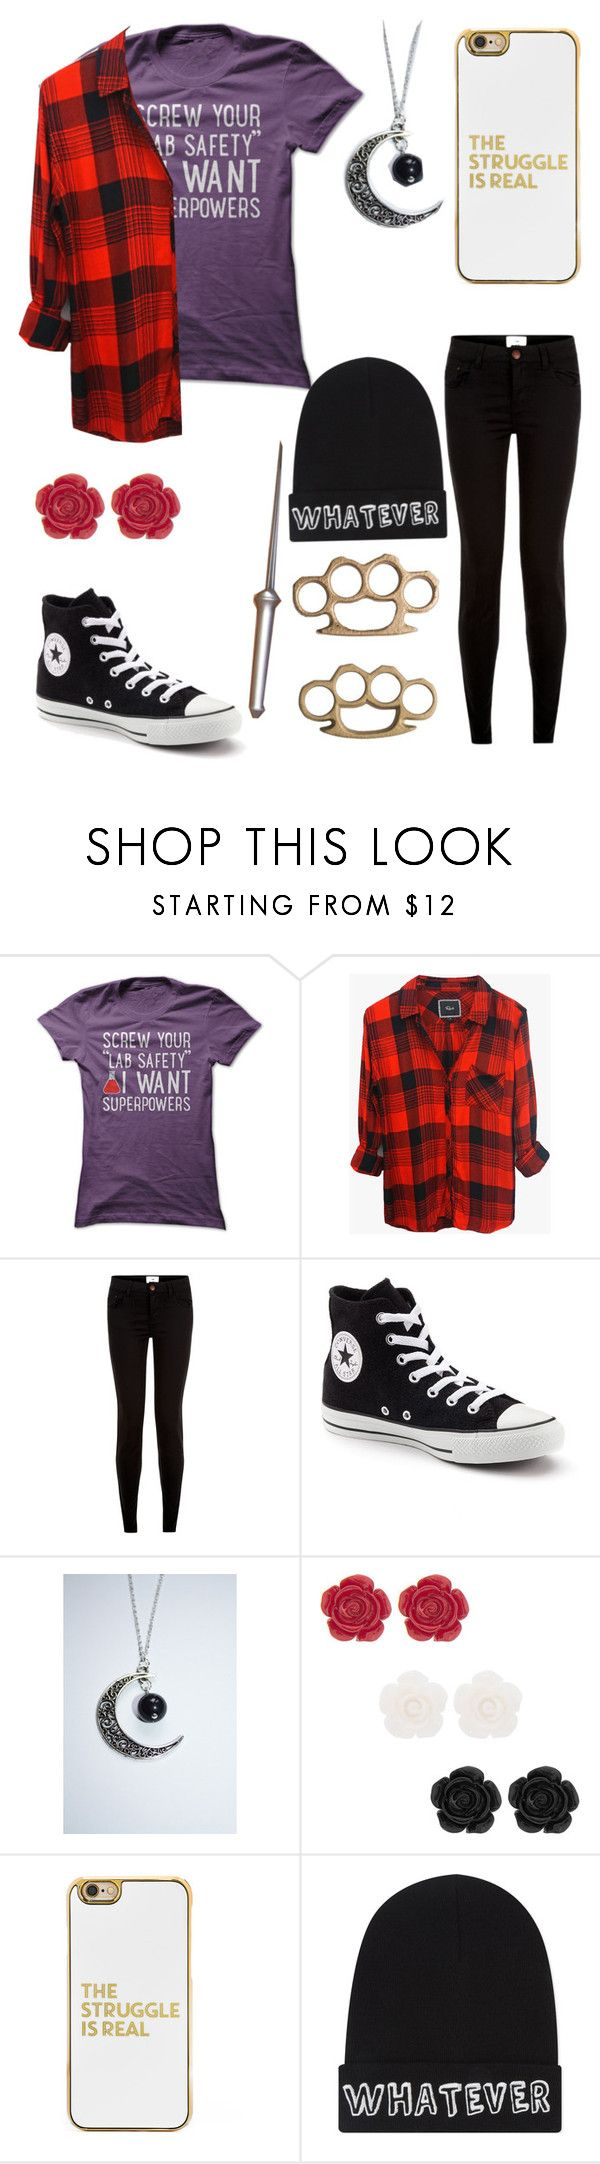 """spn oc"" by nerdtastical ❤ liked on Polyvore featuring Rails, New Look, Converse, BaubleBar and Local Heroes"